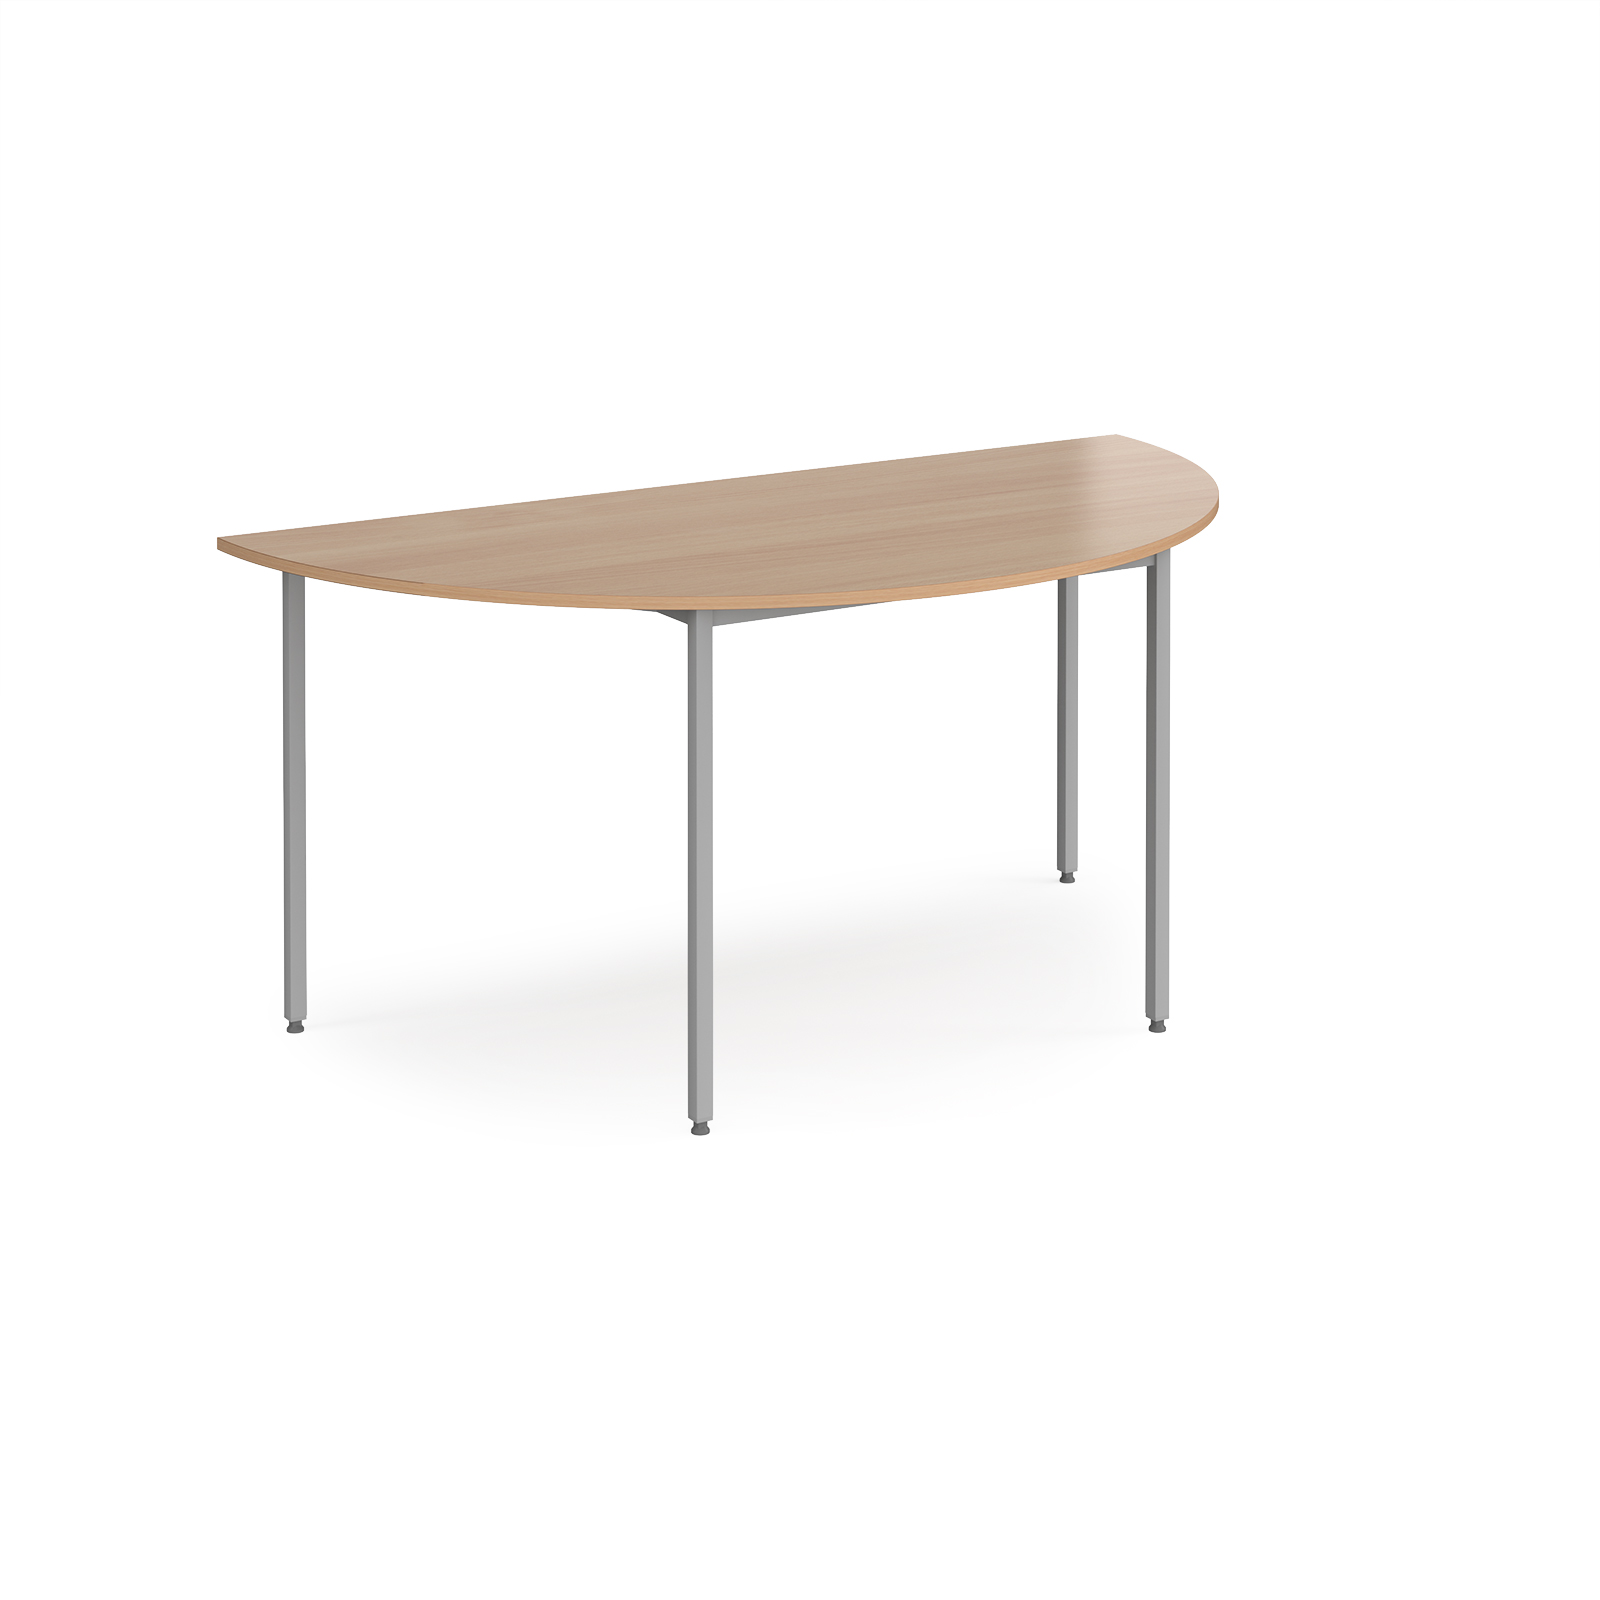 Semi circular flexi table with silver frame 1600mm x 800mm - beech